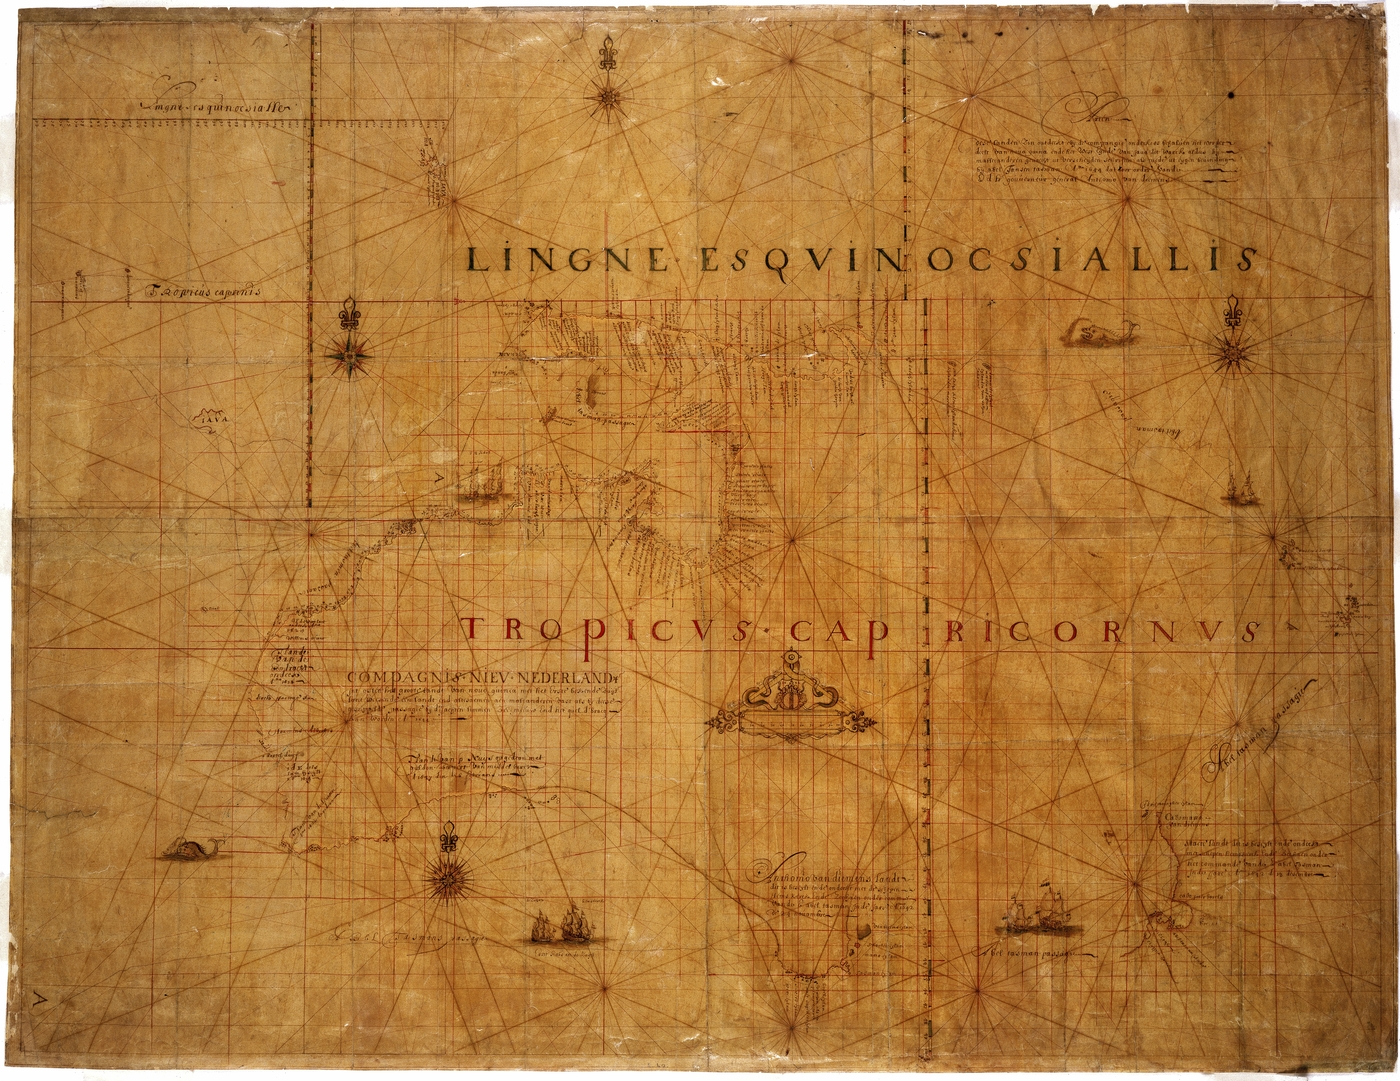 Old faded map known as the Tasman Map 1644 which looks like an early depiction of Australia